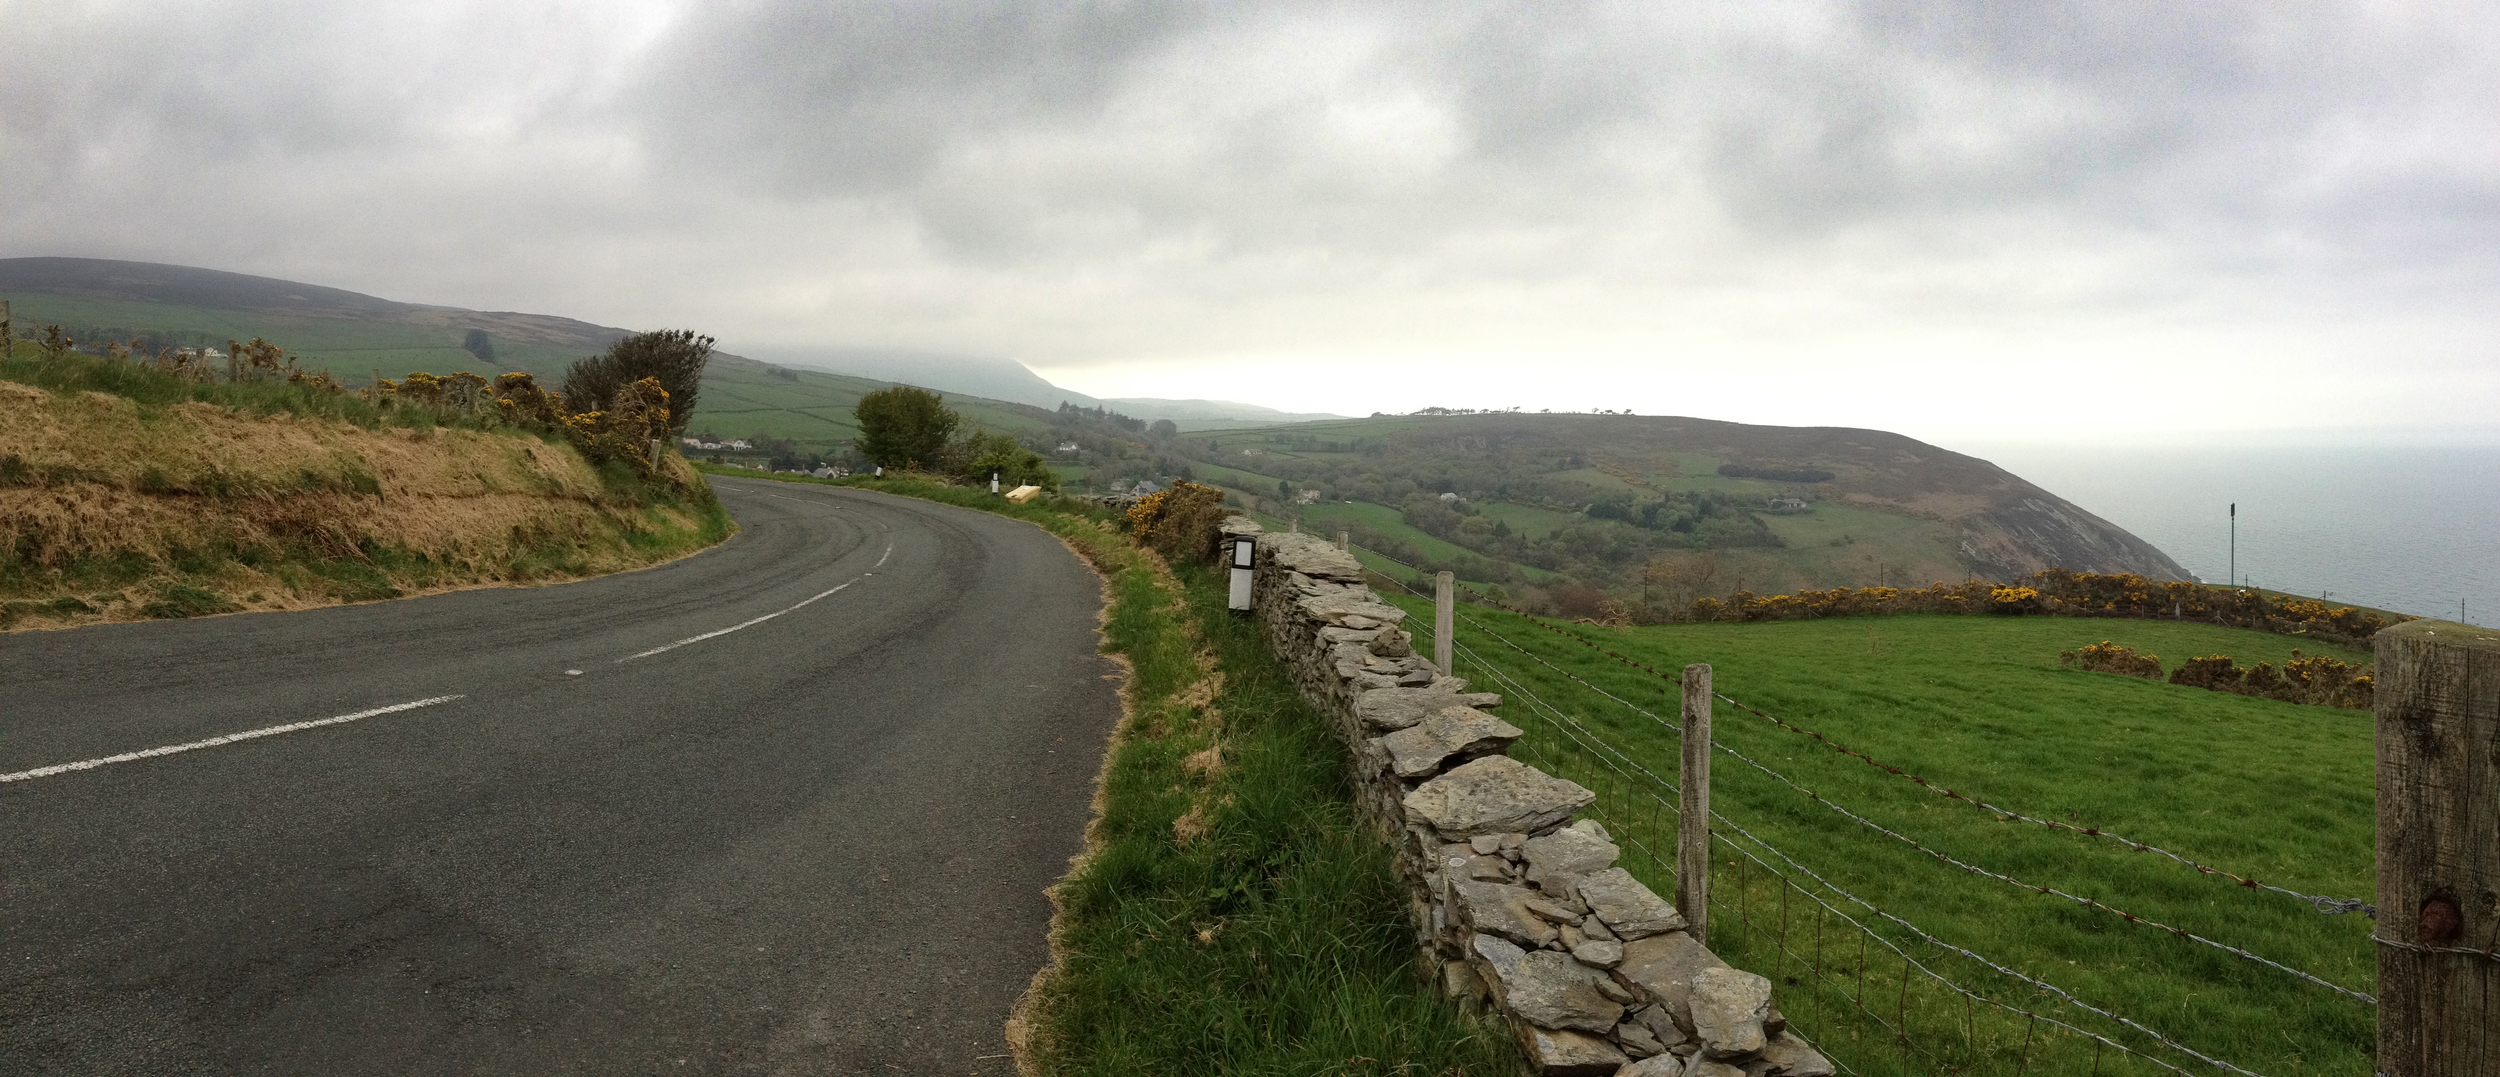 View from my run in the Isle of Man.